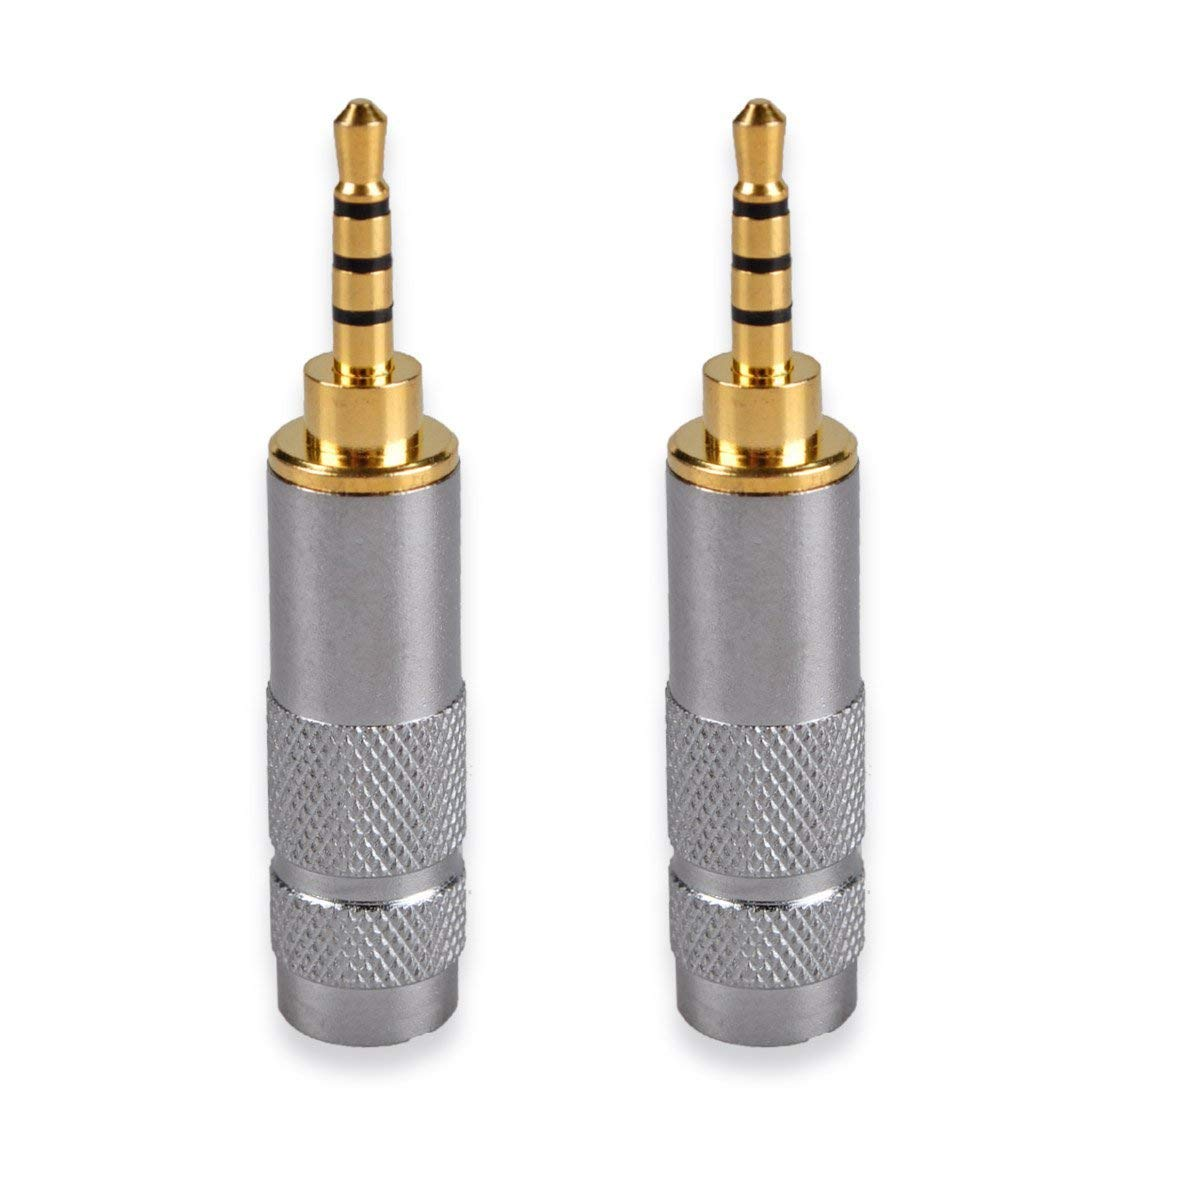 hight resolution of get quotations httx 2 5mm stereo trrs 4 pole male conductor connector replacement for headphone jack solder type